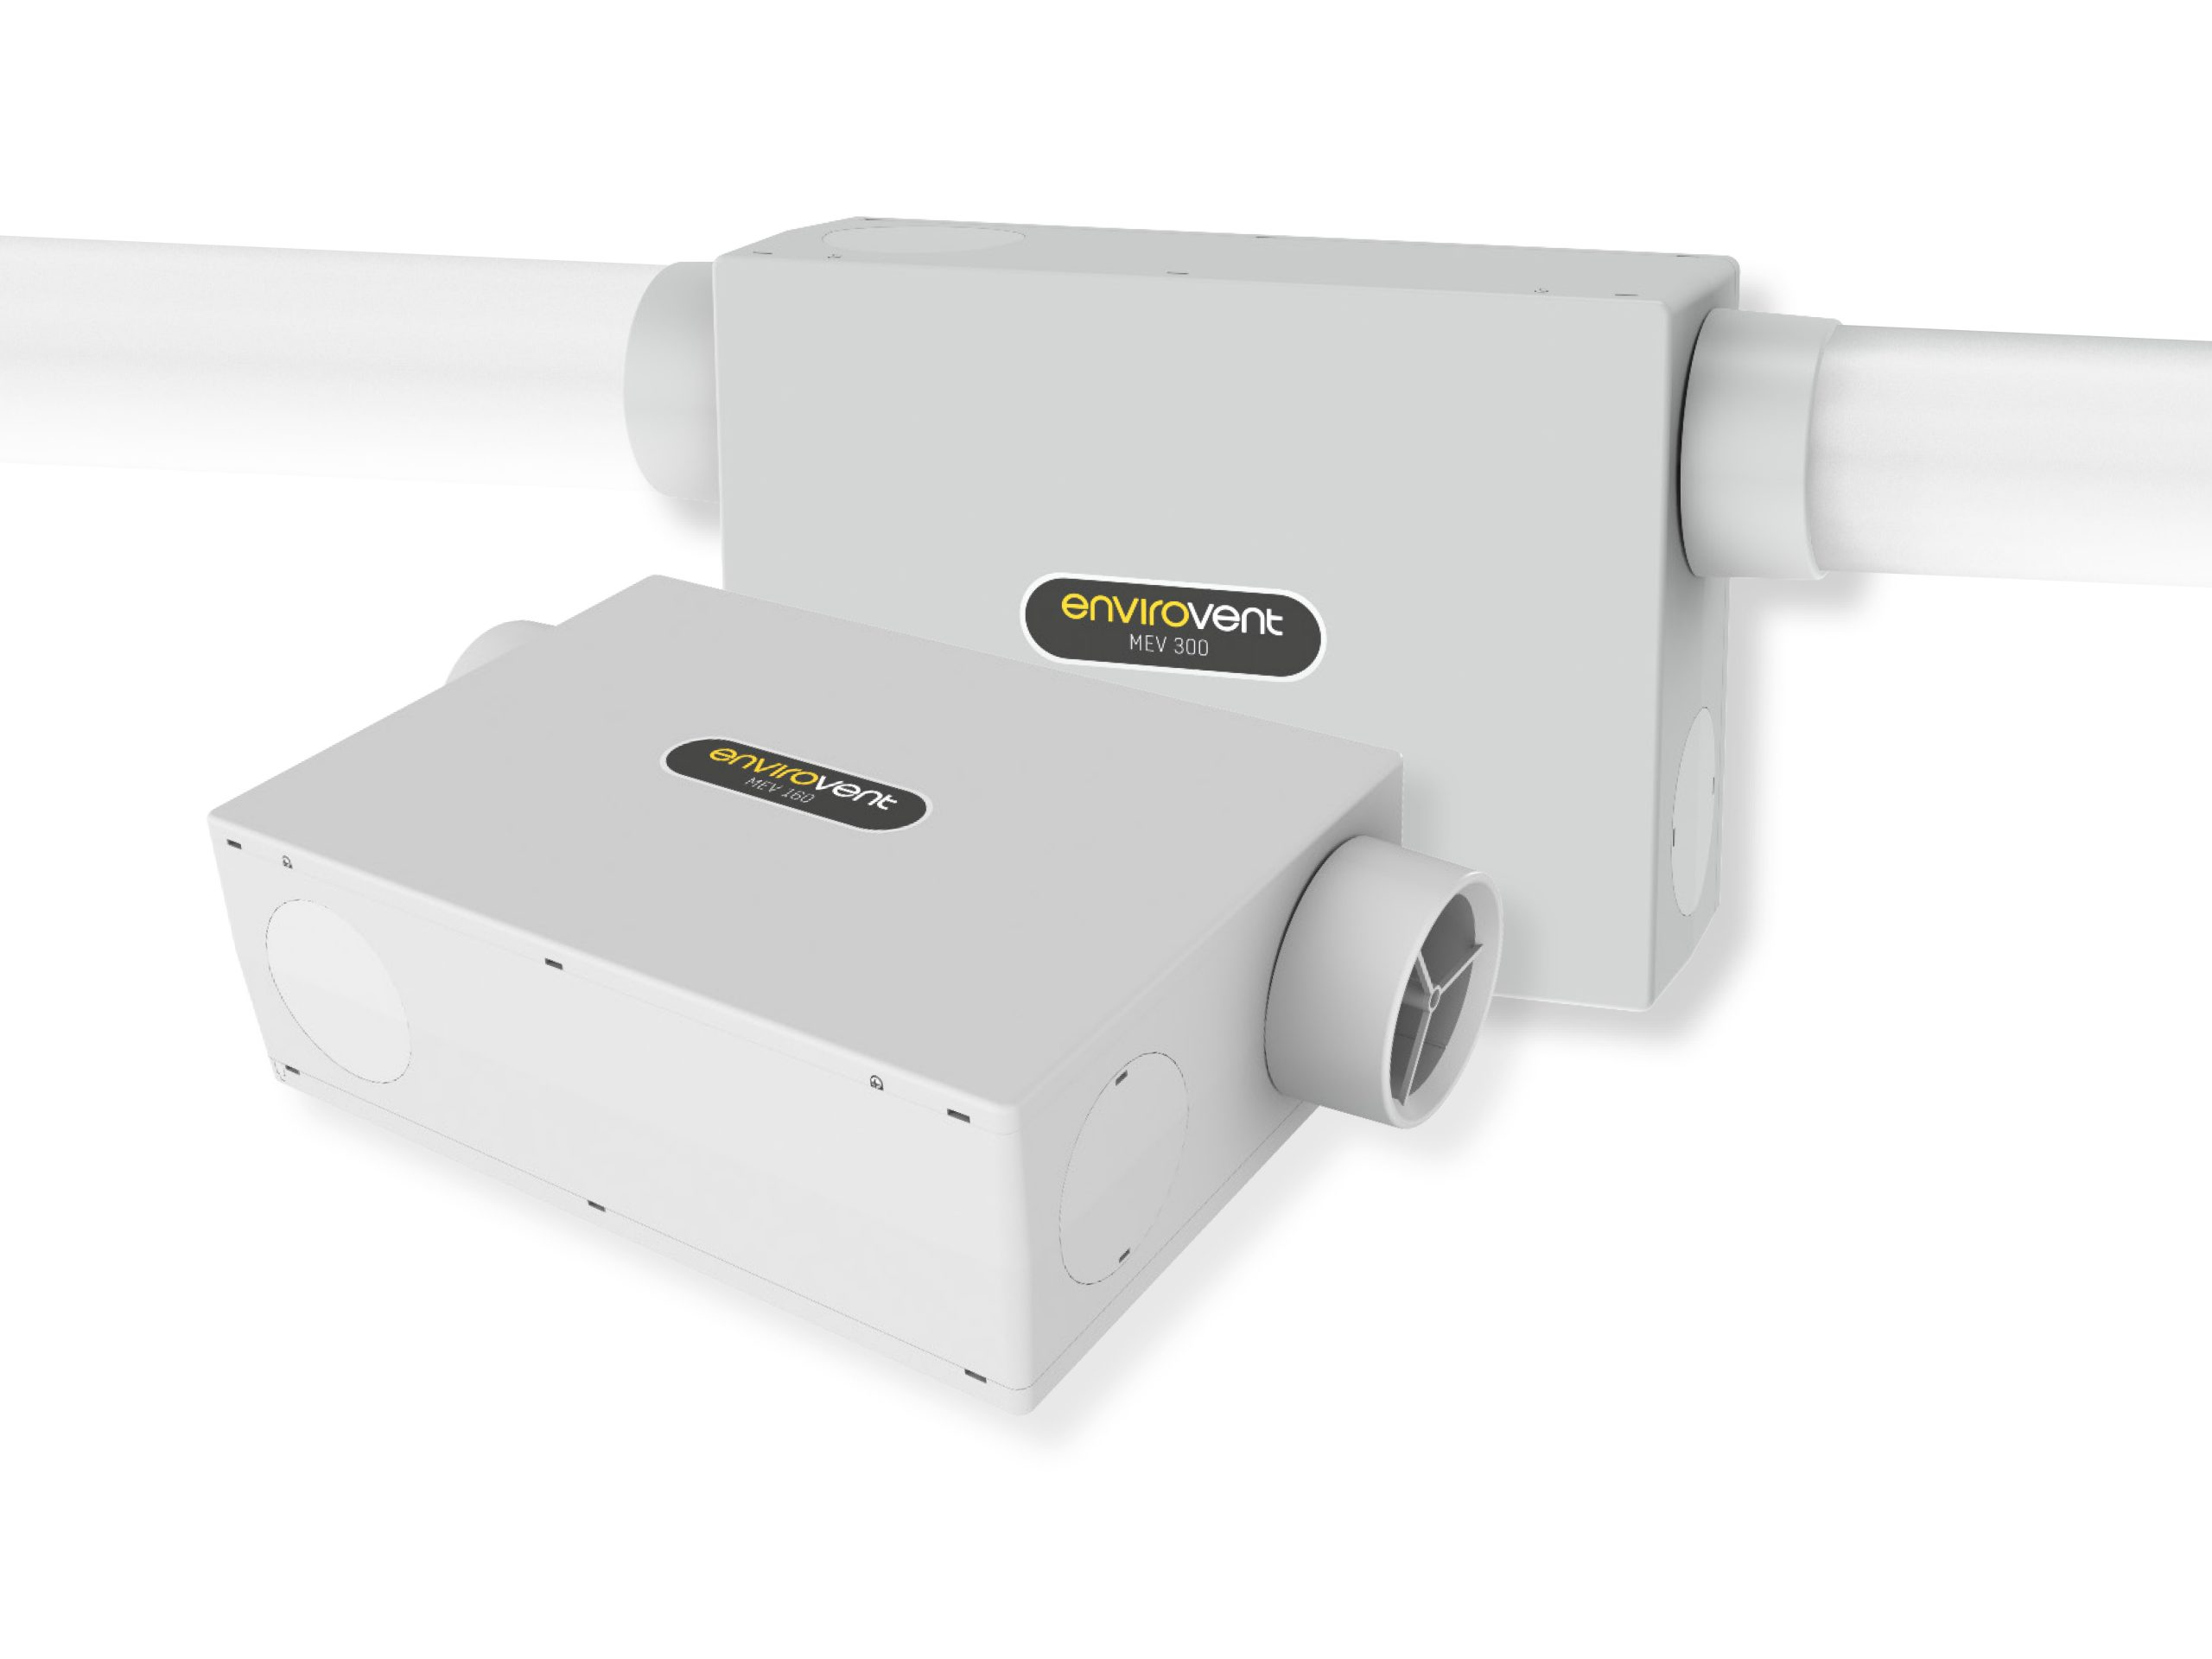 ENVIROVENT LAUNCHES NEW MECHANICAL EXTRACT VENTILATION SYSTEMS